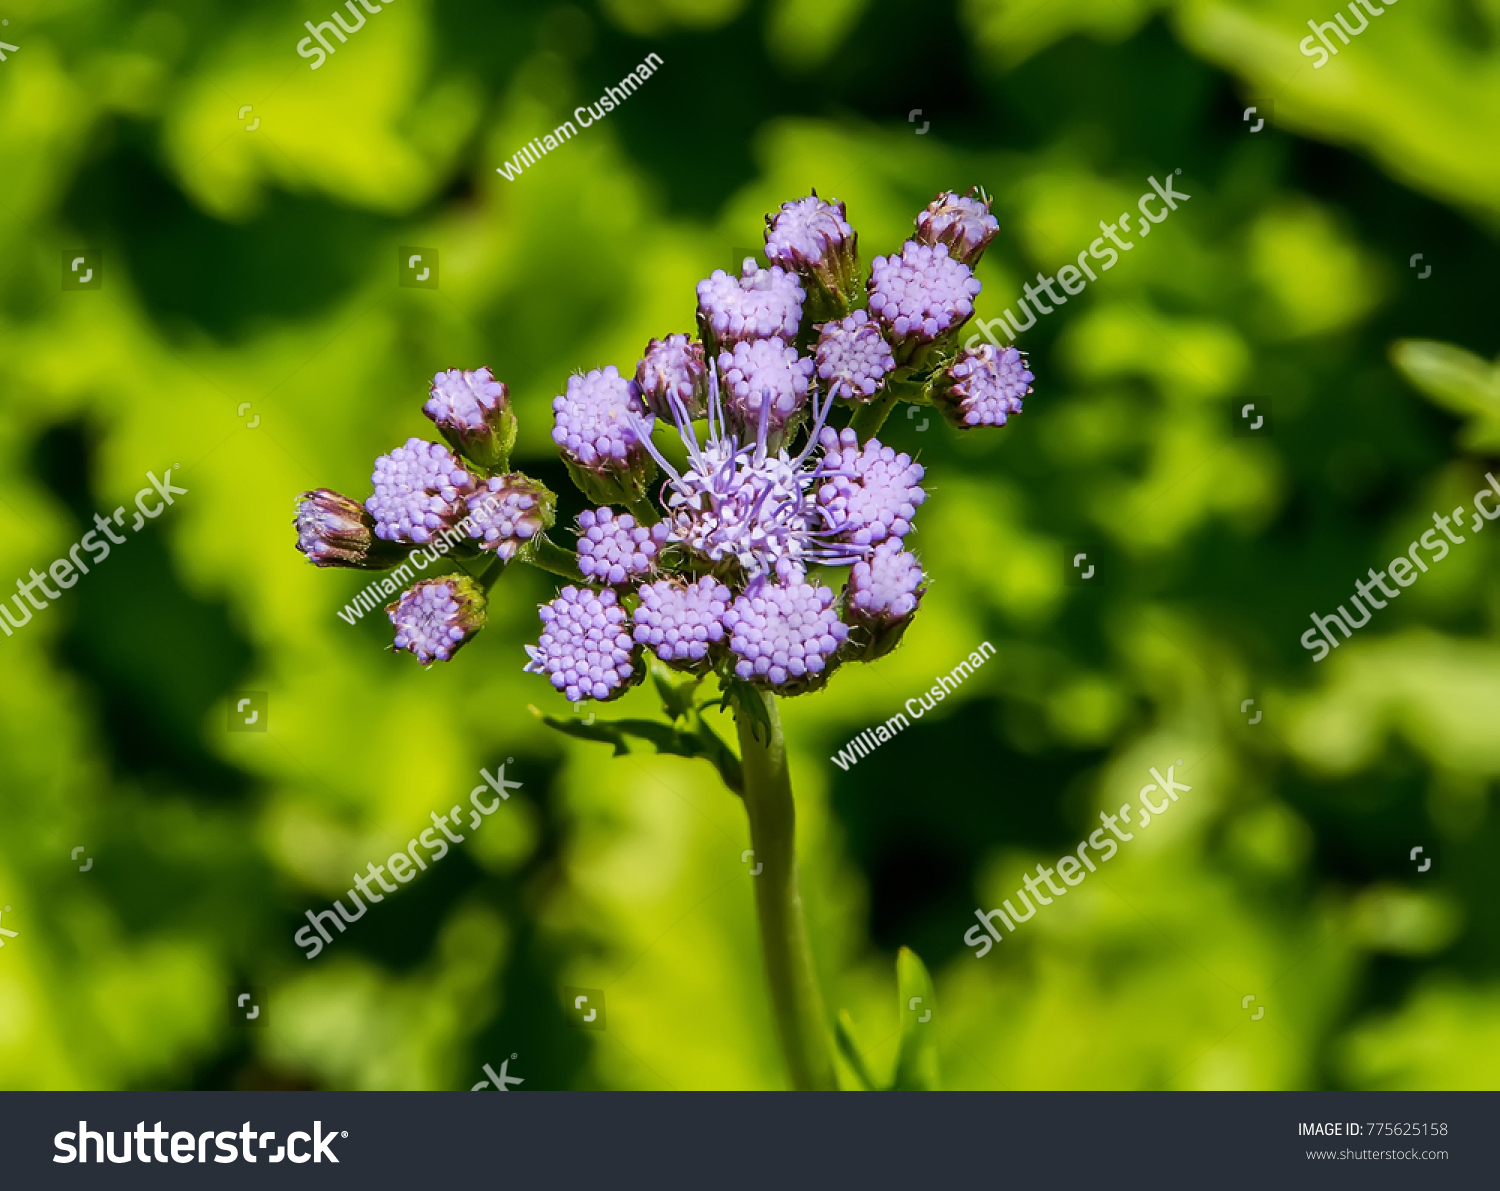 Blue mistflower also known blue boneset stock photo edit now blue mistflower also known as blue boneset izmirmasajfo